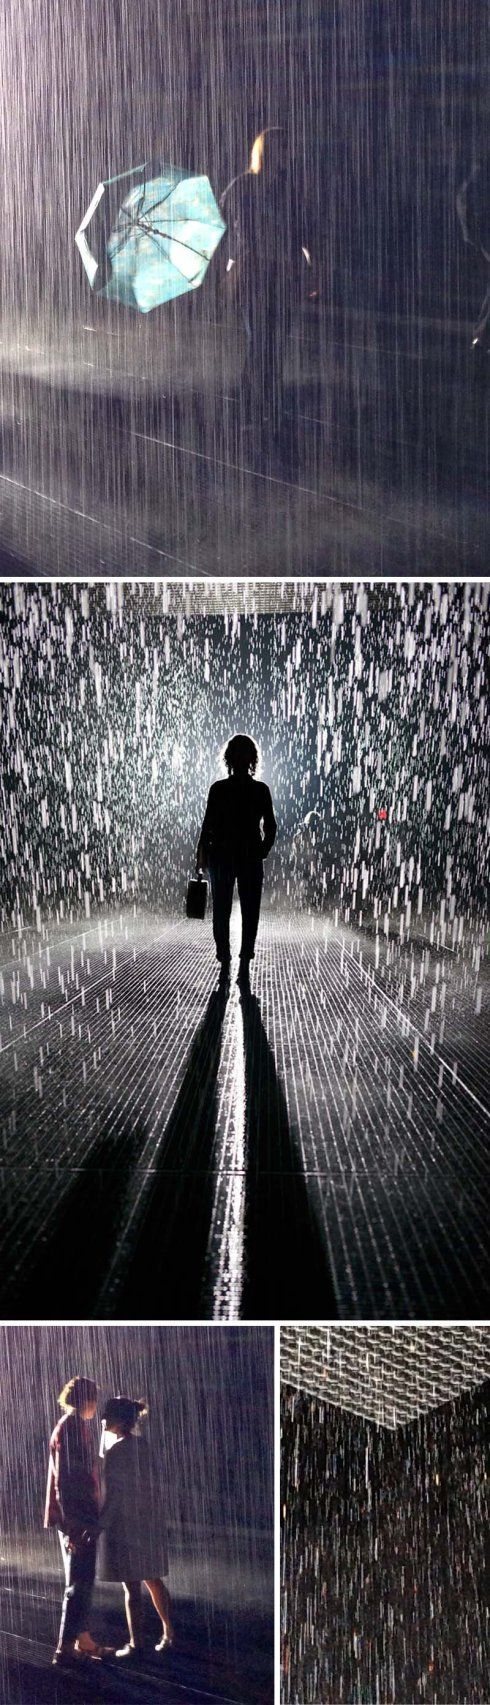 Rain Room at MoMA, X1, immersive interactive installation with falling water that doesnt get you wet. cool art. Fun in NYC